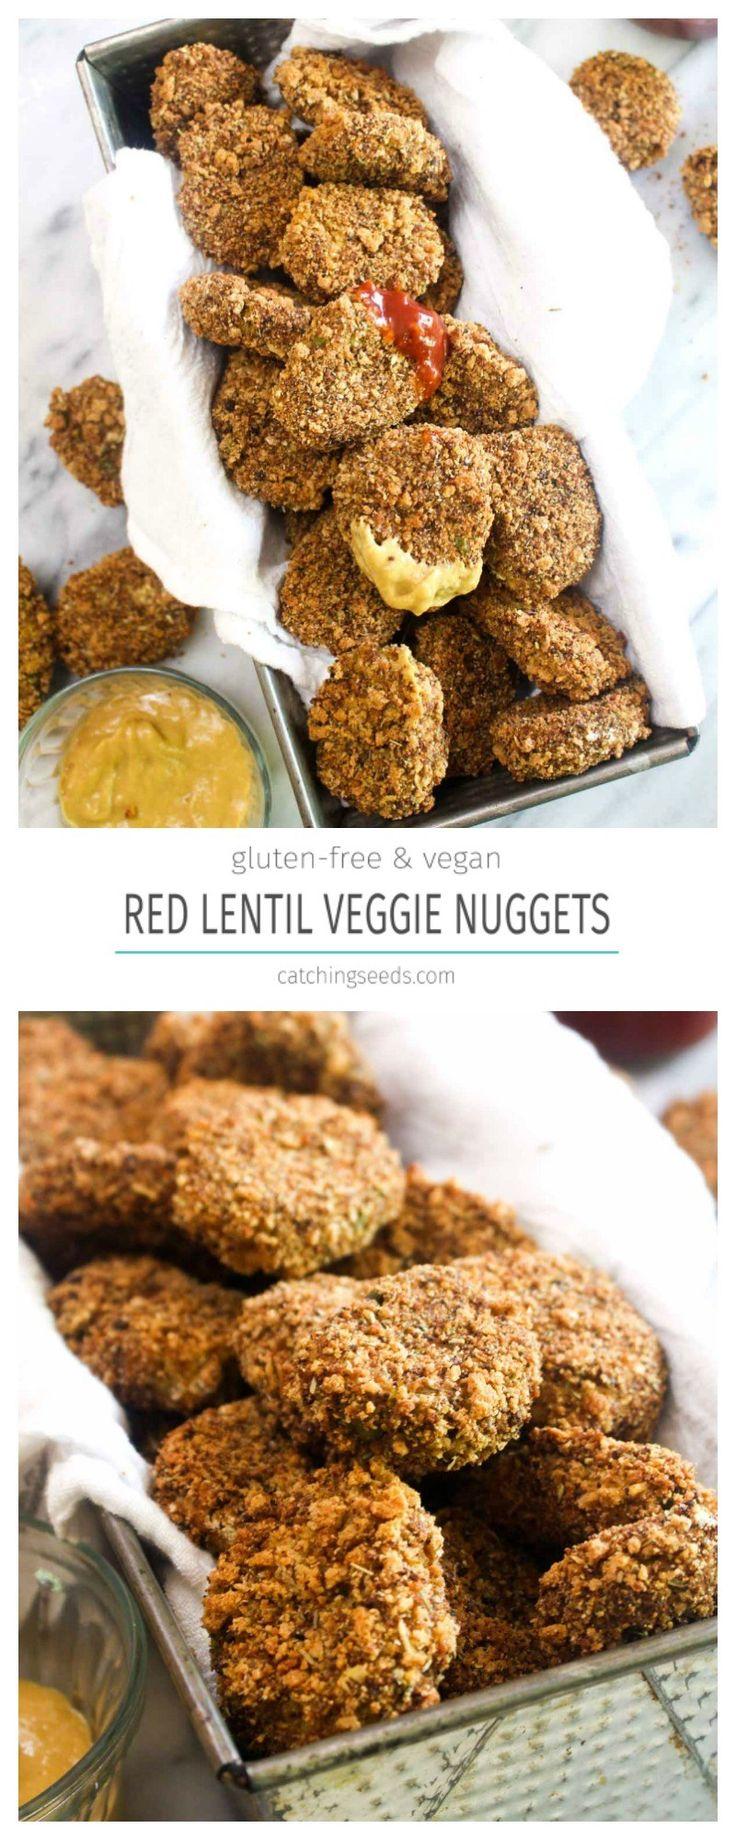 TheseRed Lentil Veggie Nuggets are a healthy recipe that the whole family will love! These tasty bites sneak in protein and several servings of vegetables!